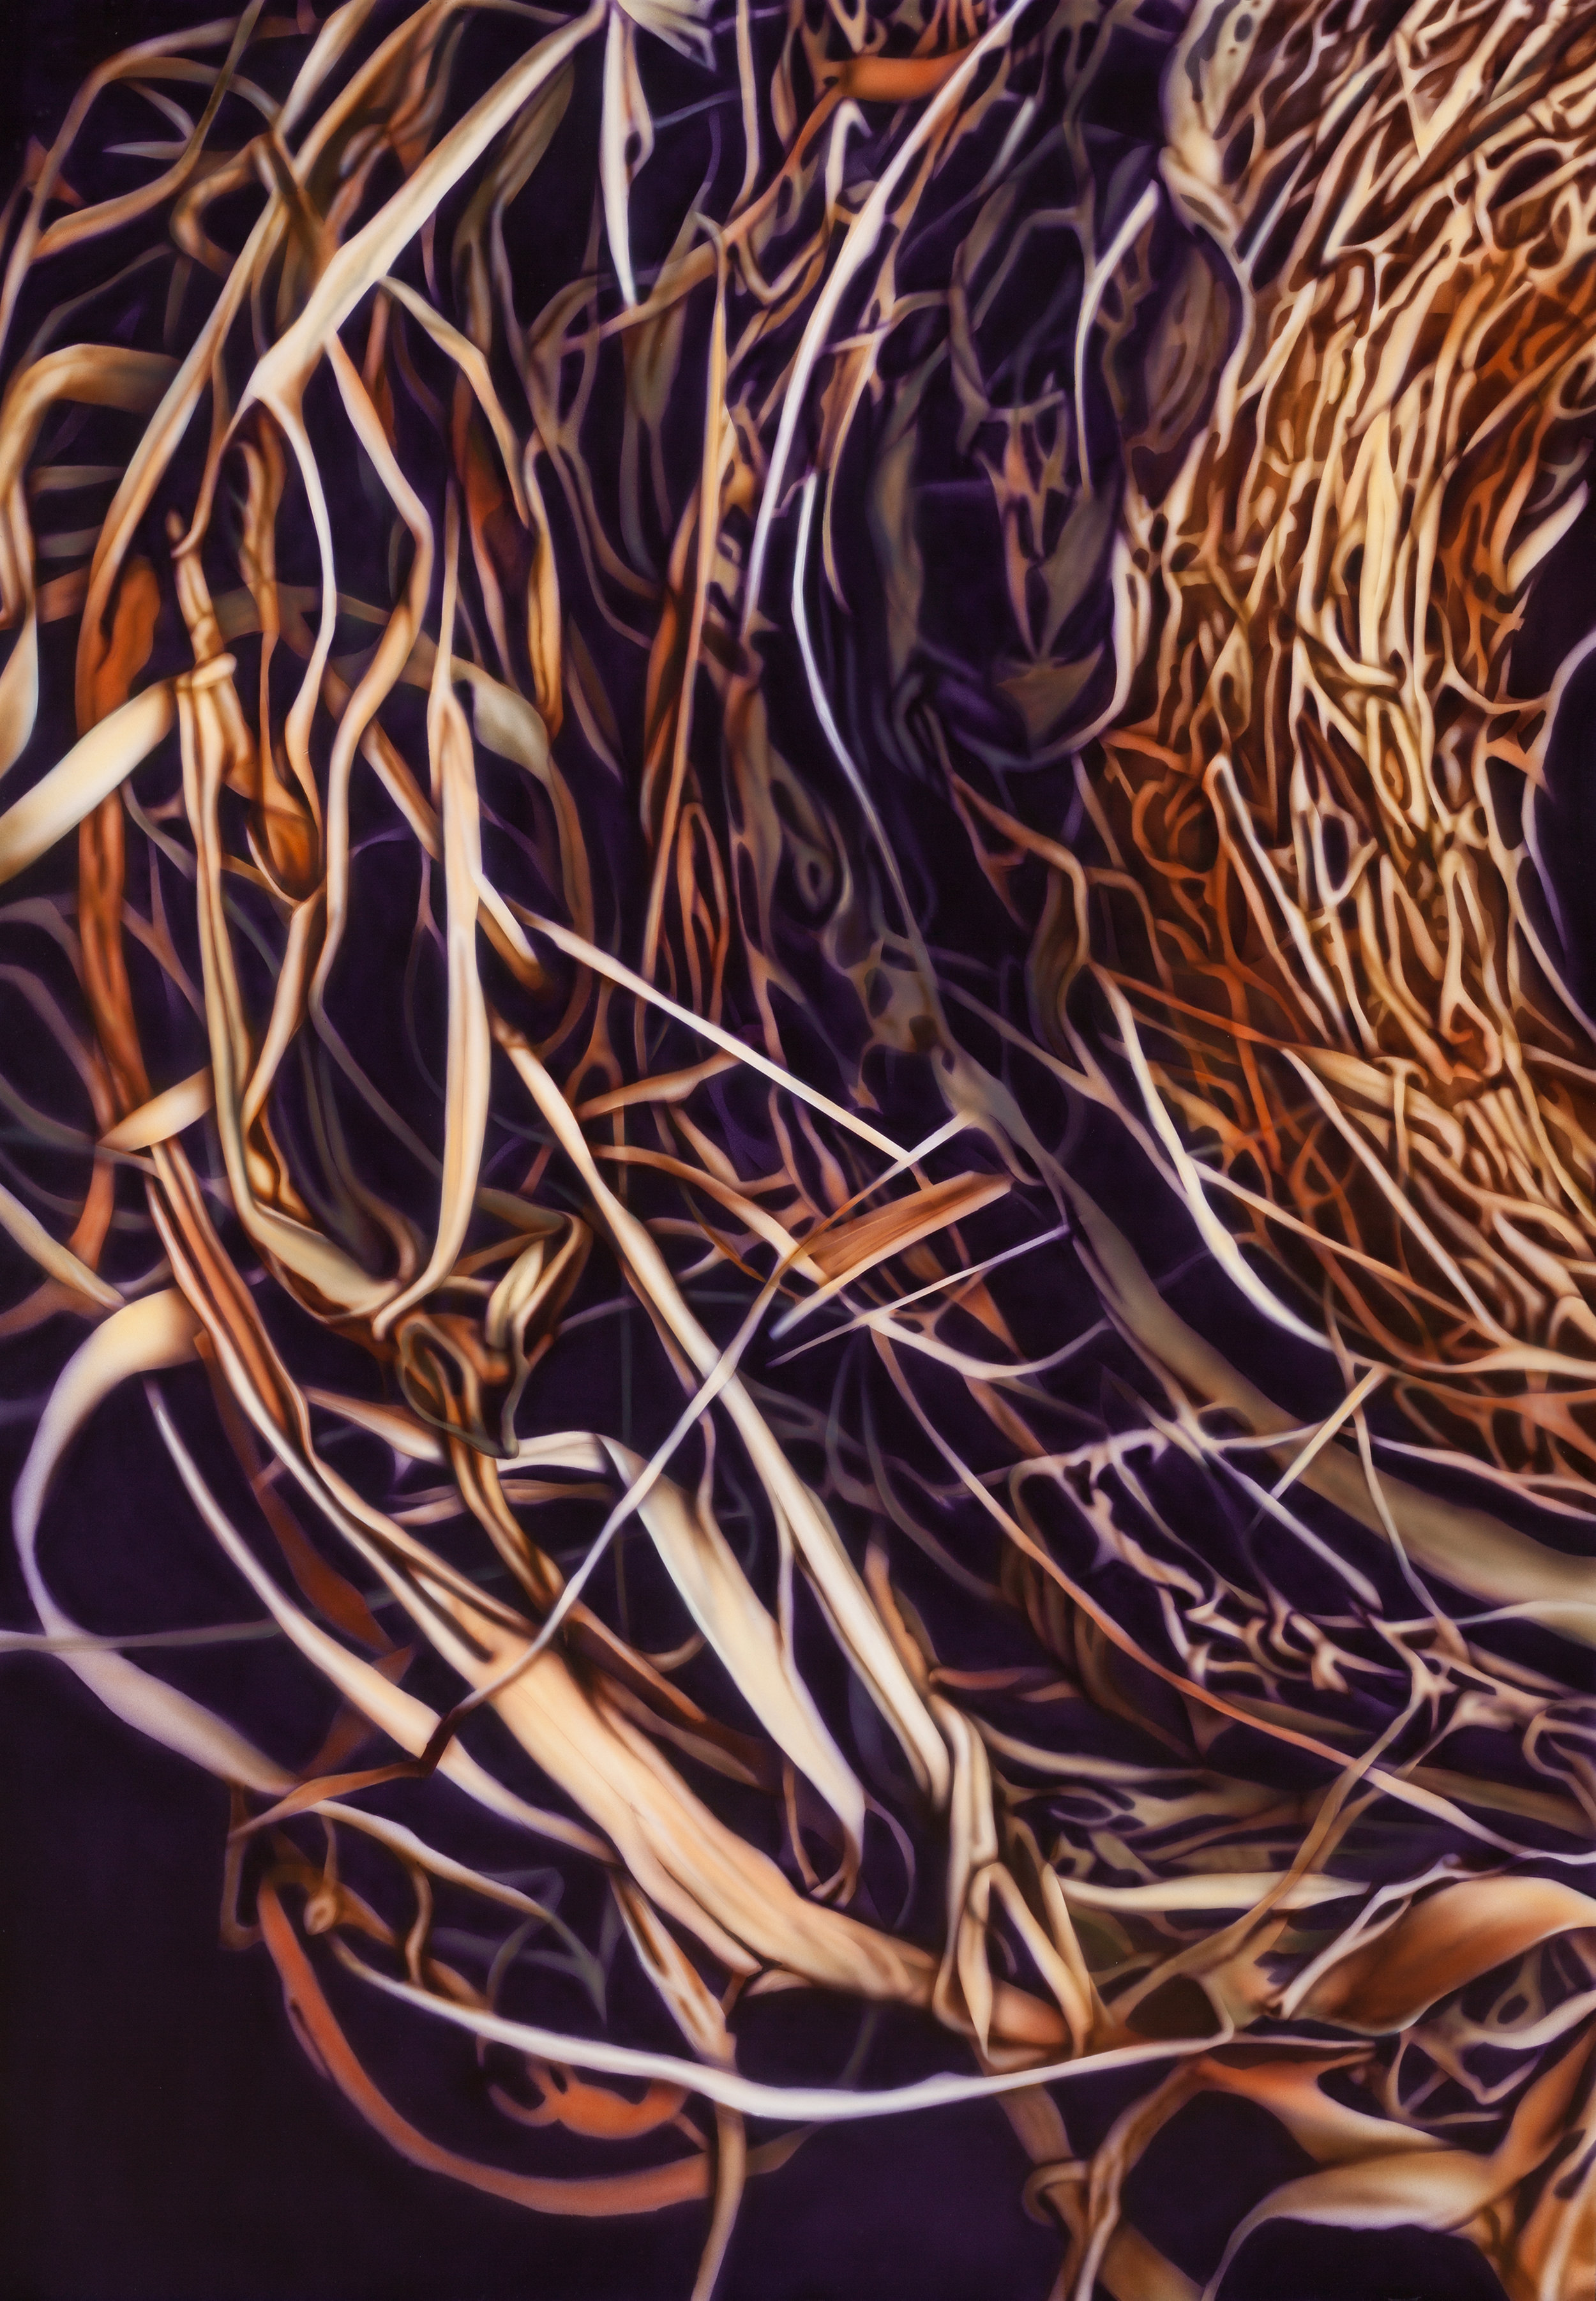 Nesting, 2012: Acrylic and varnish on board, 60 x 42 in (152 x 107 cm)